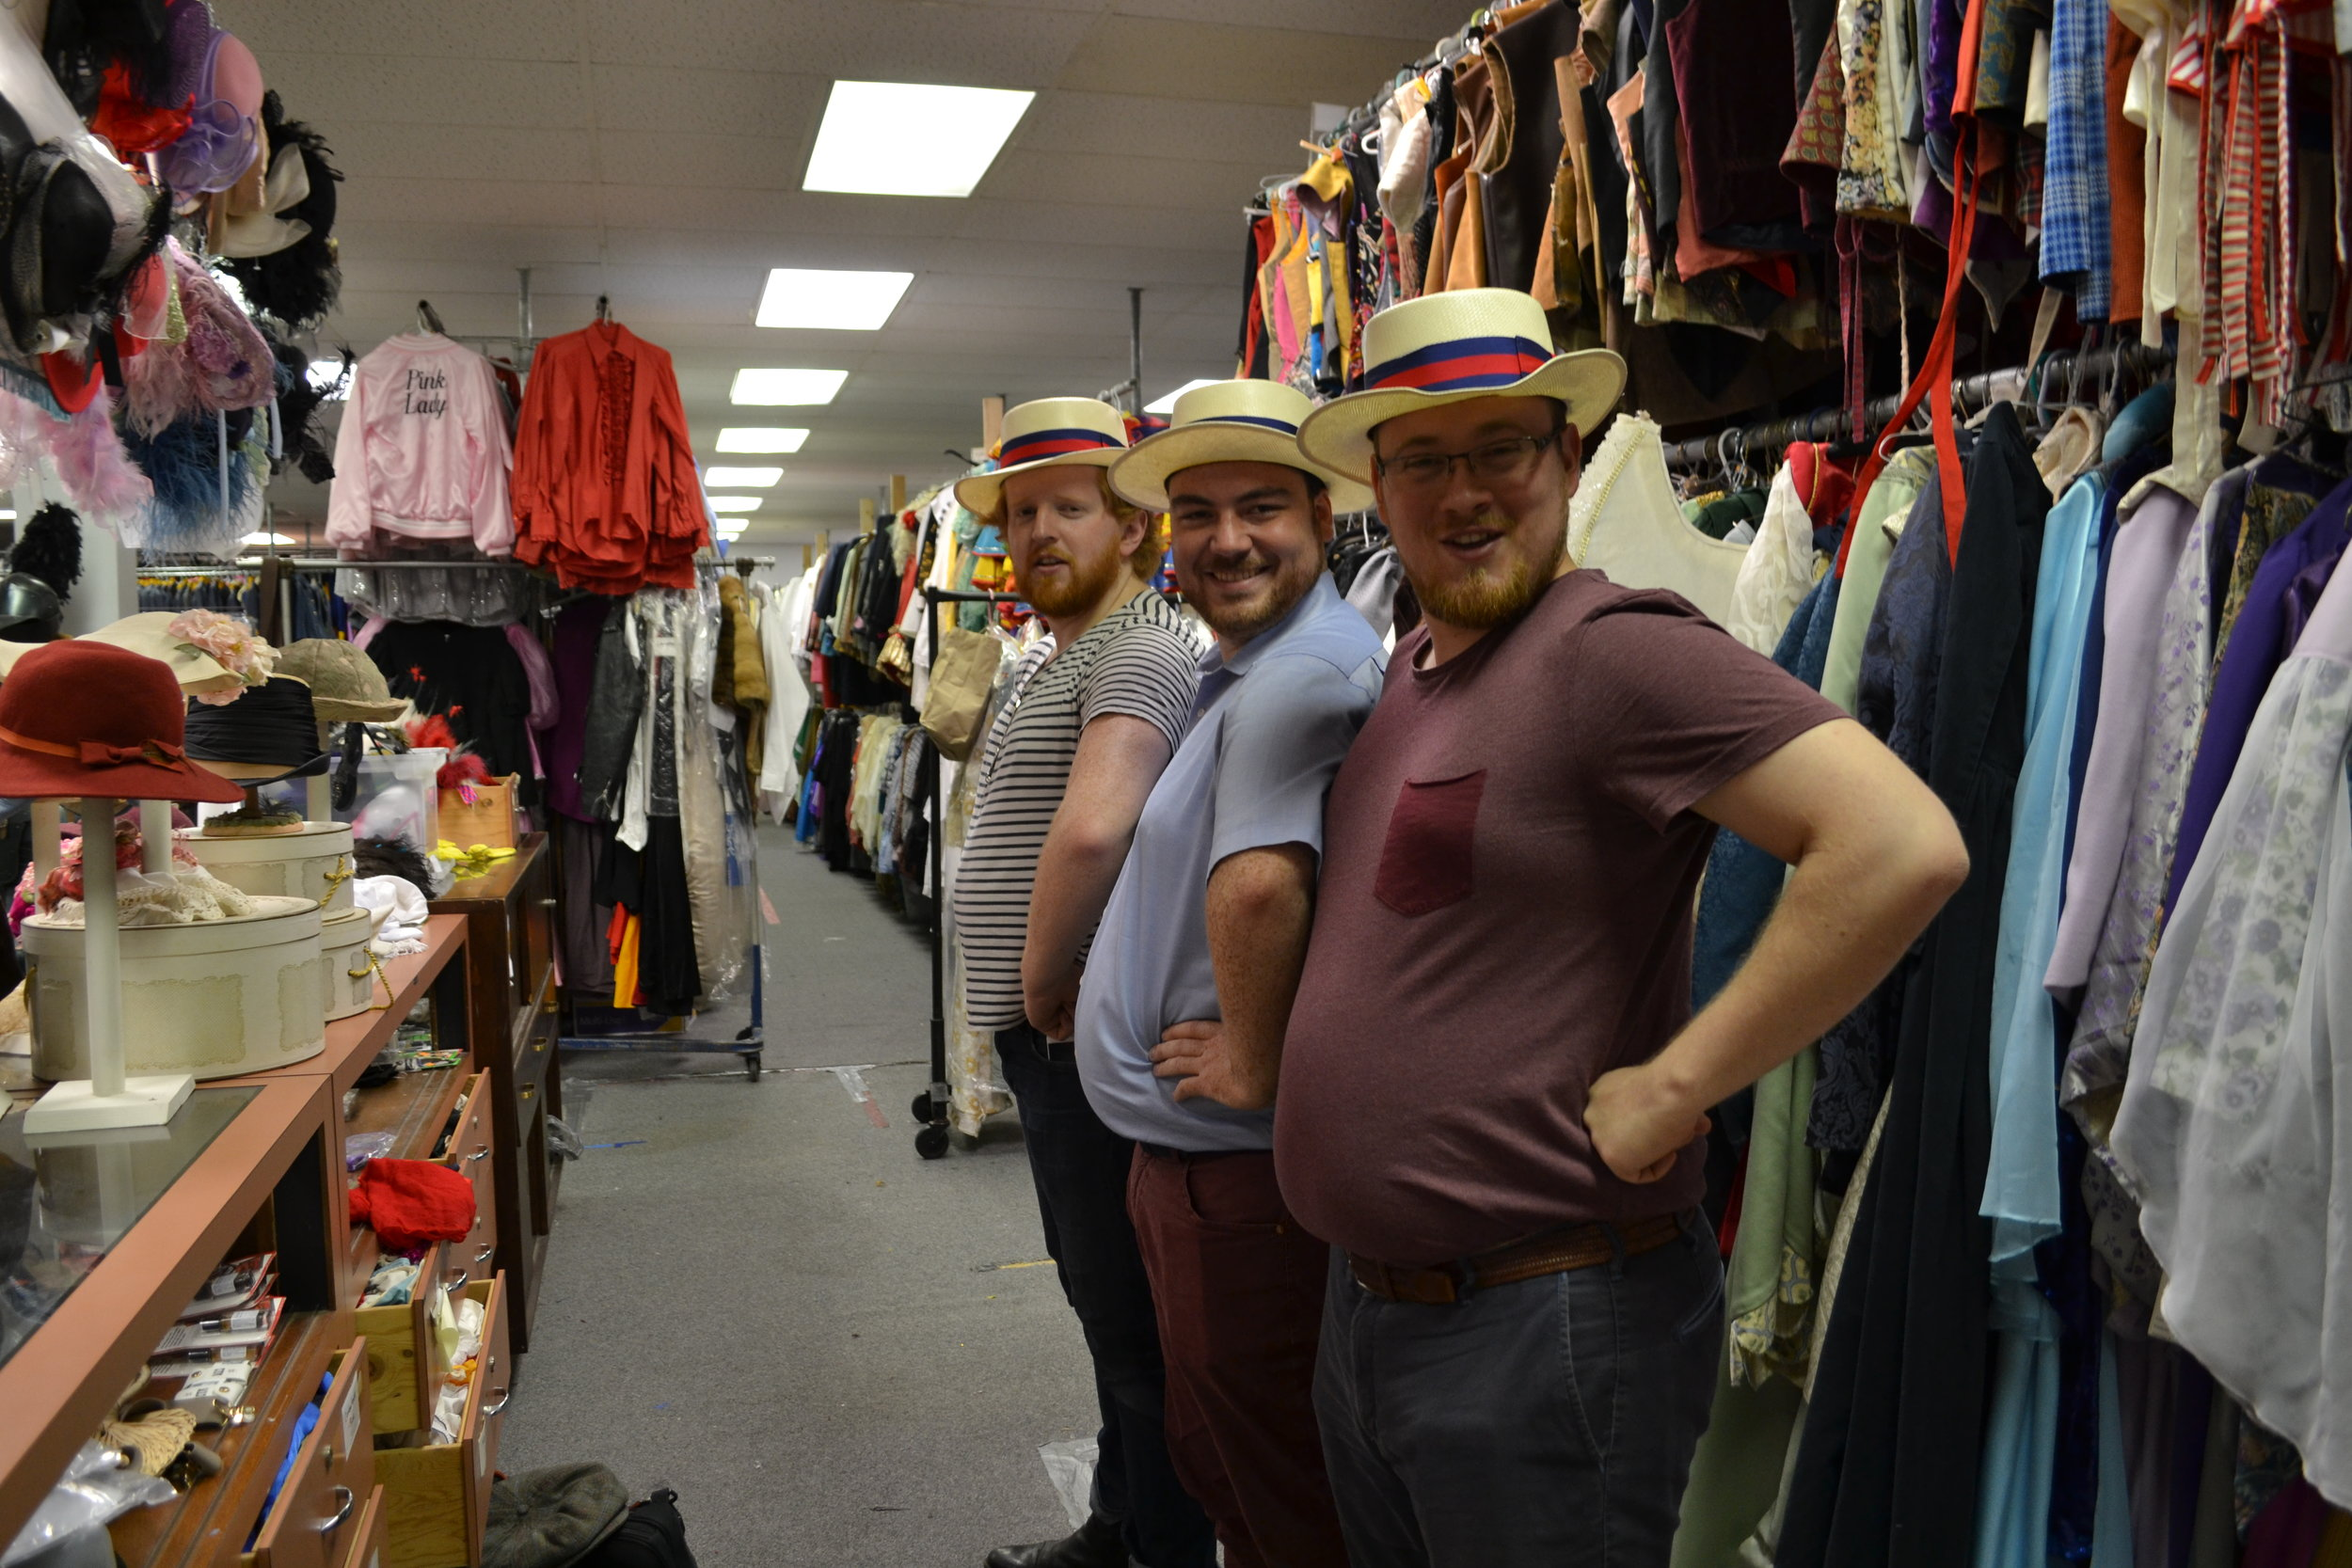 Besuch im Fundus | visiting the costume Shop